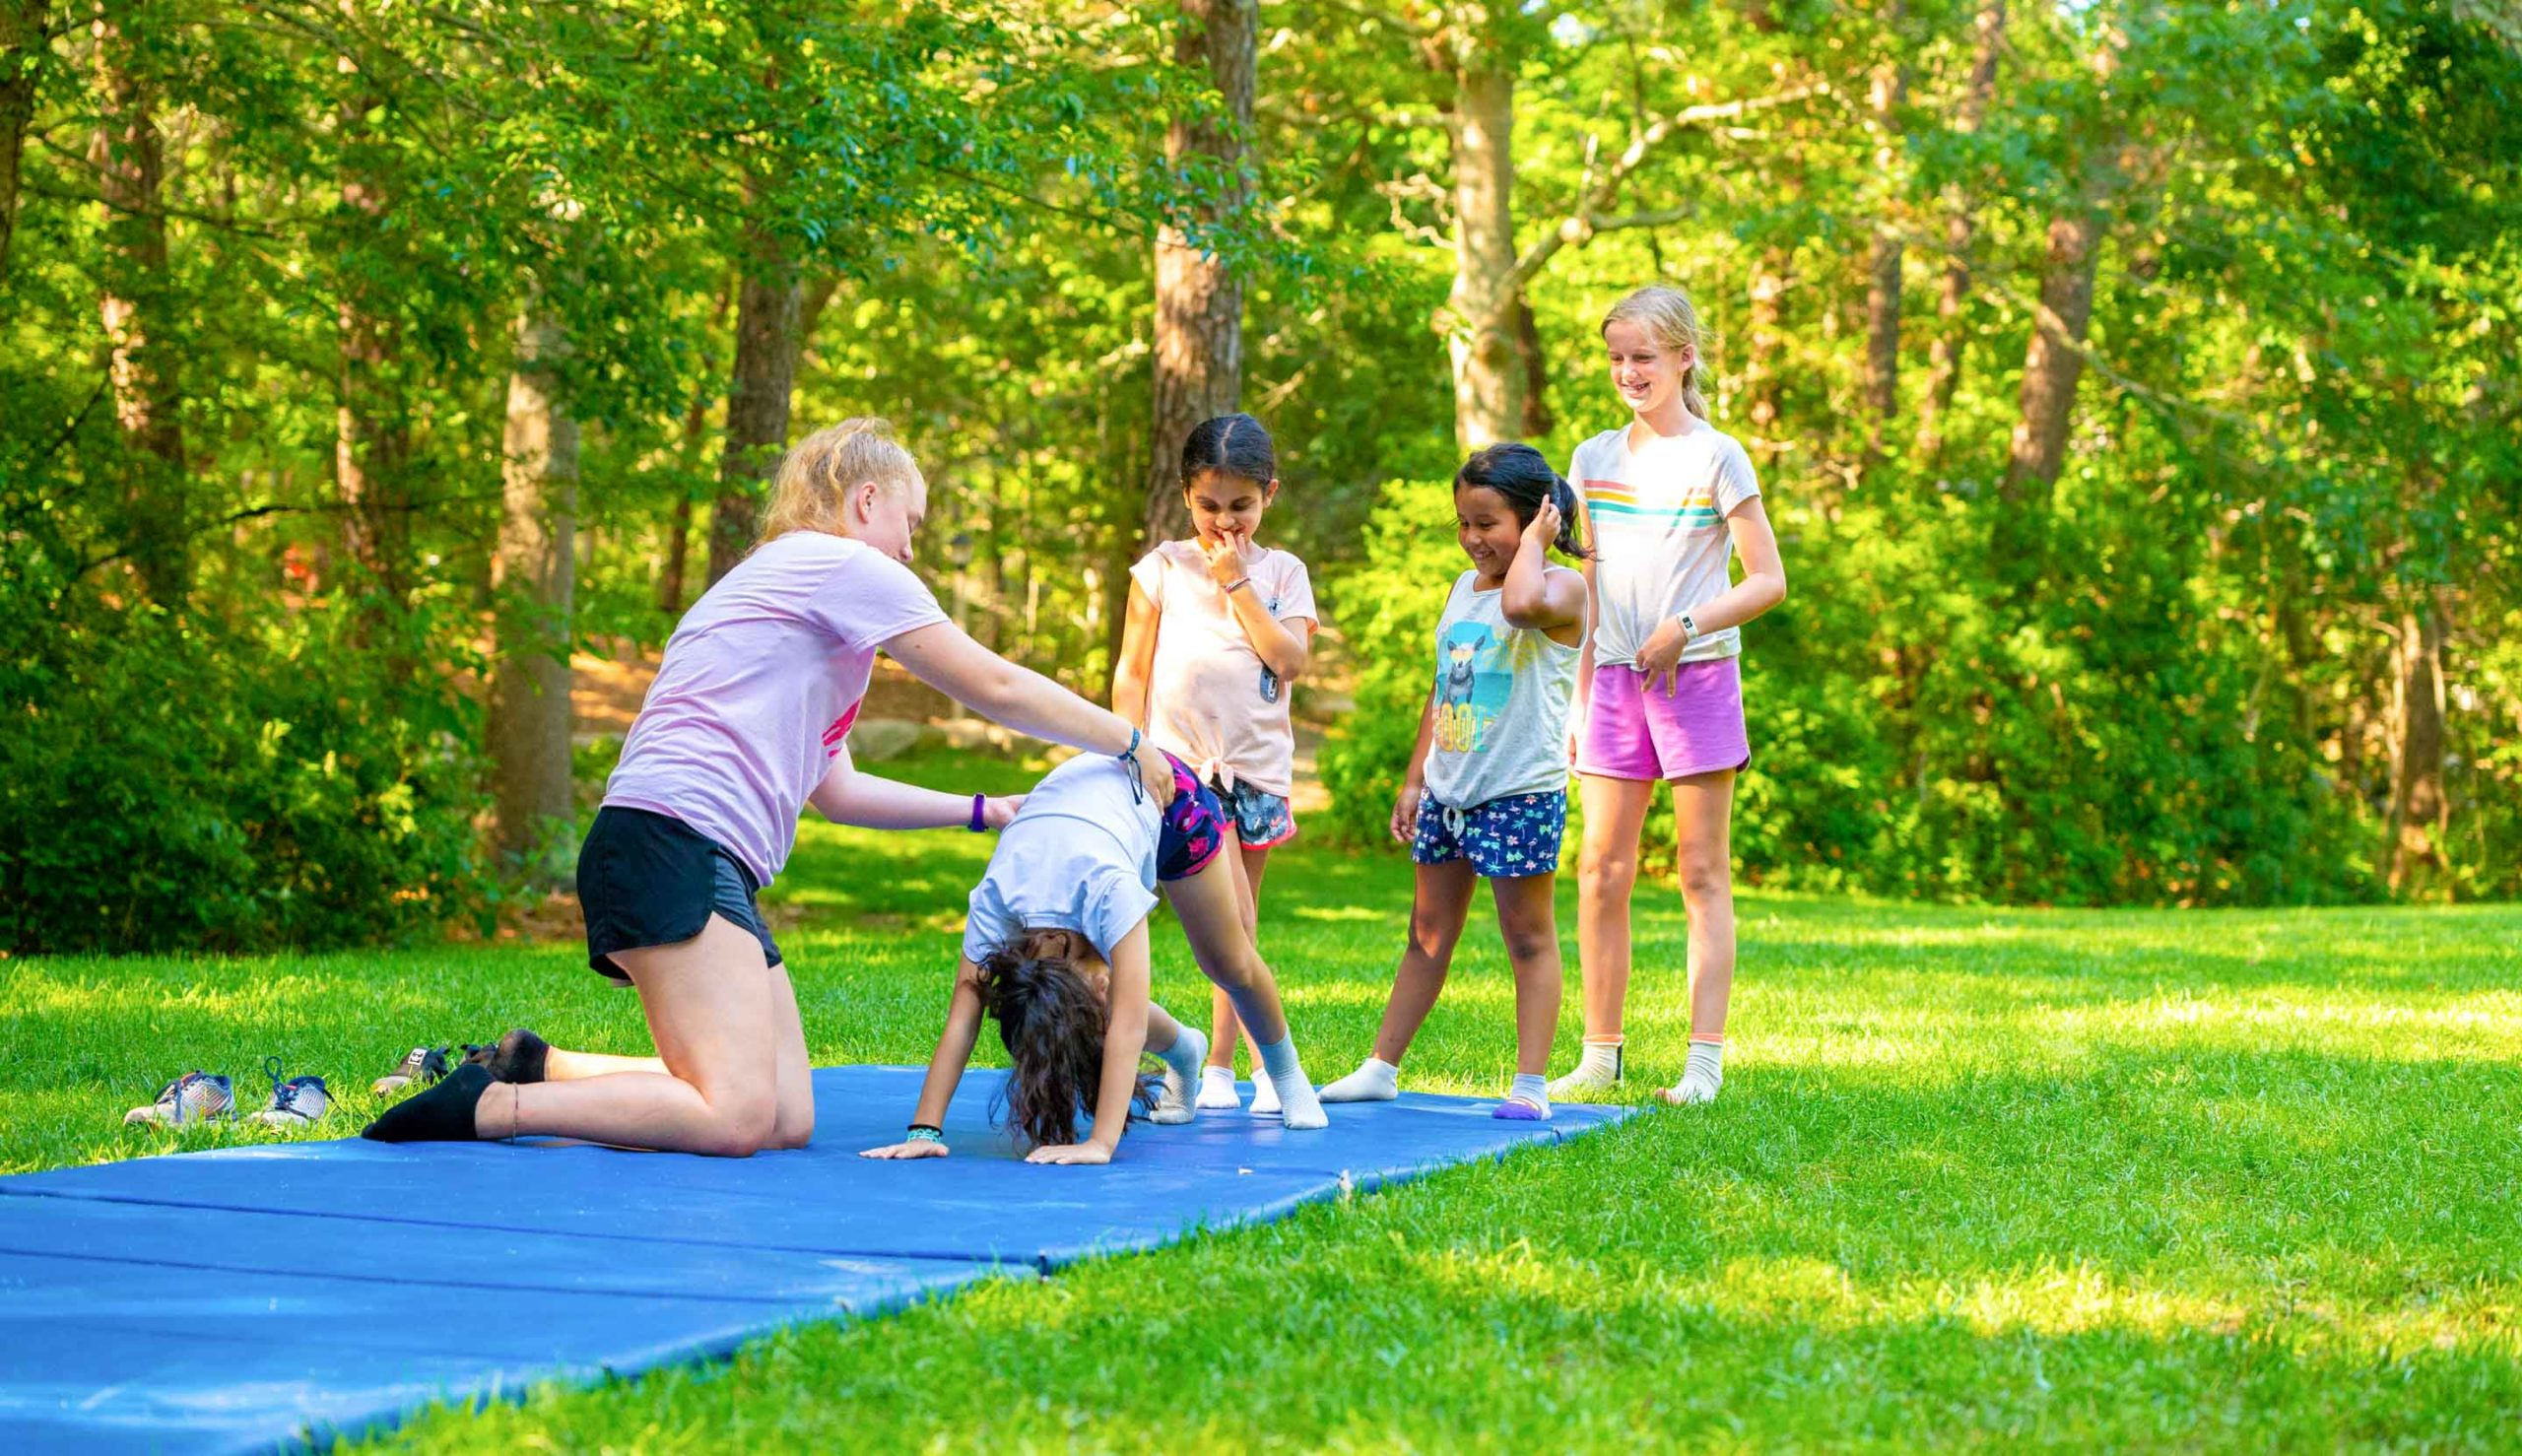 Young campers doing gymnastics outside